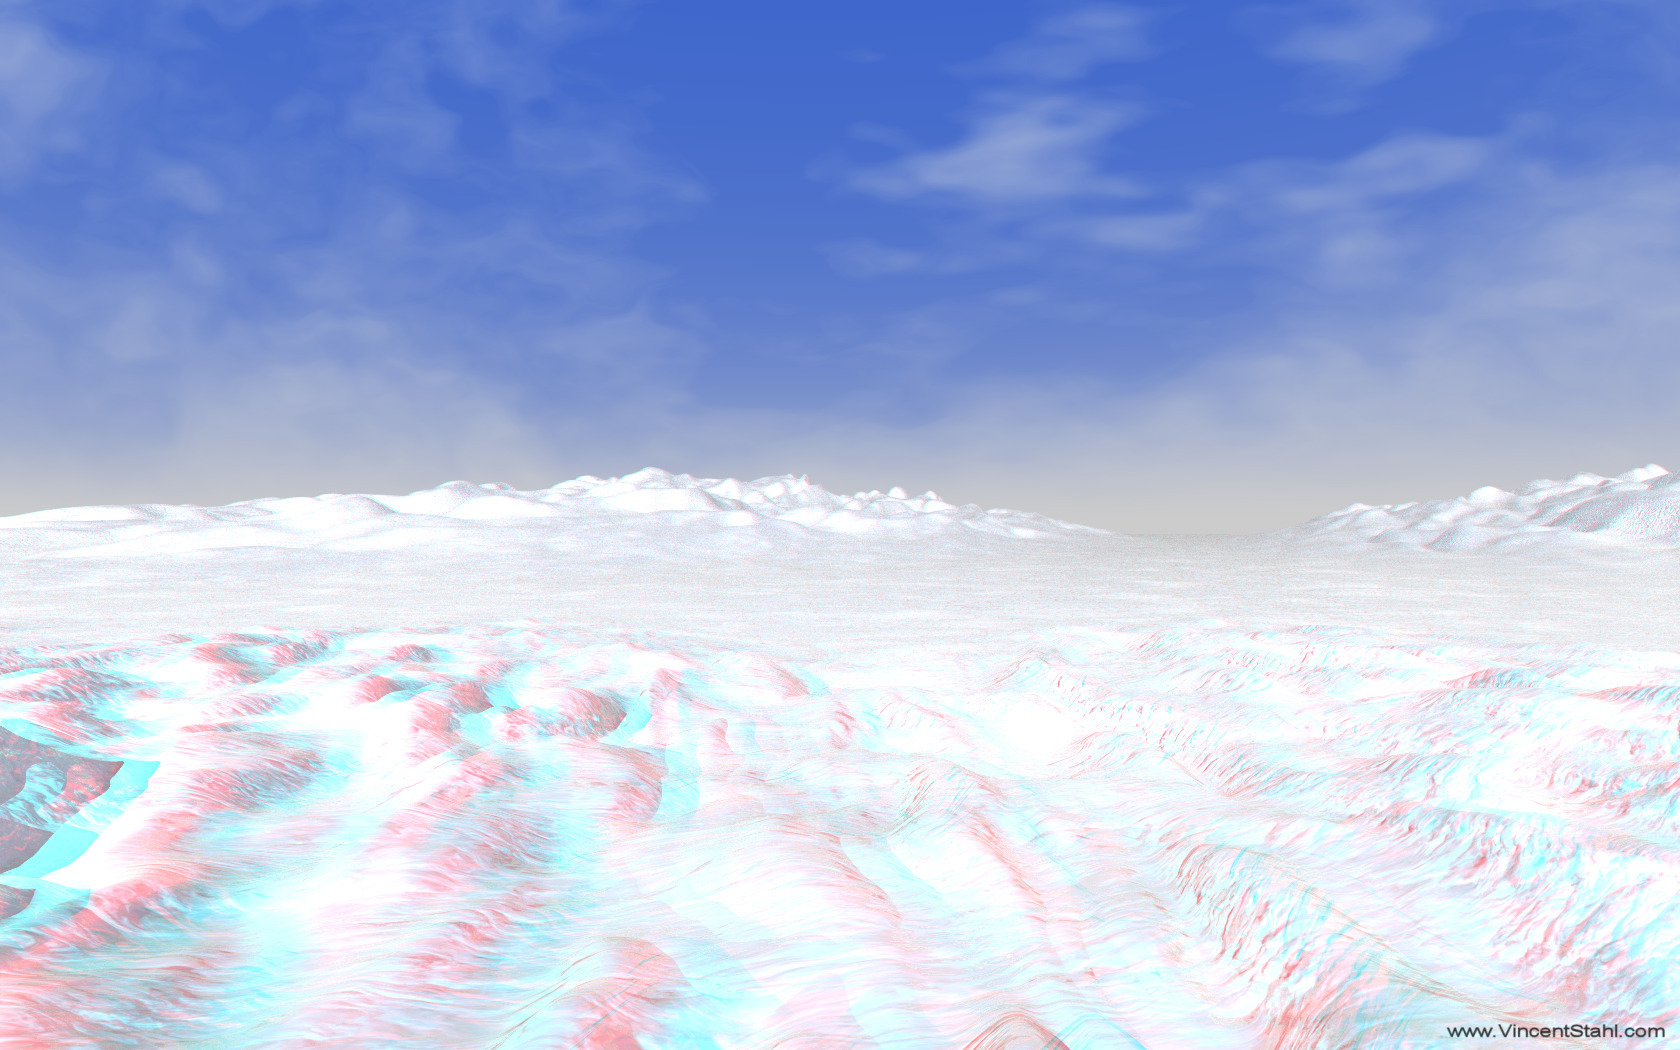 Snow Field - 3D stereo anaglyph color